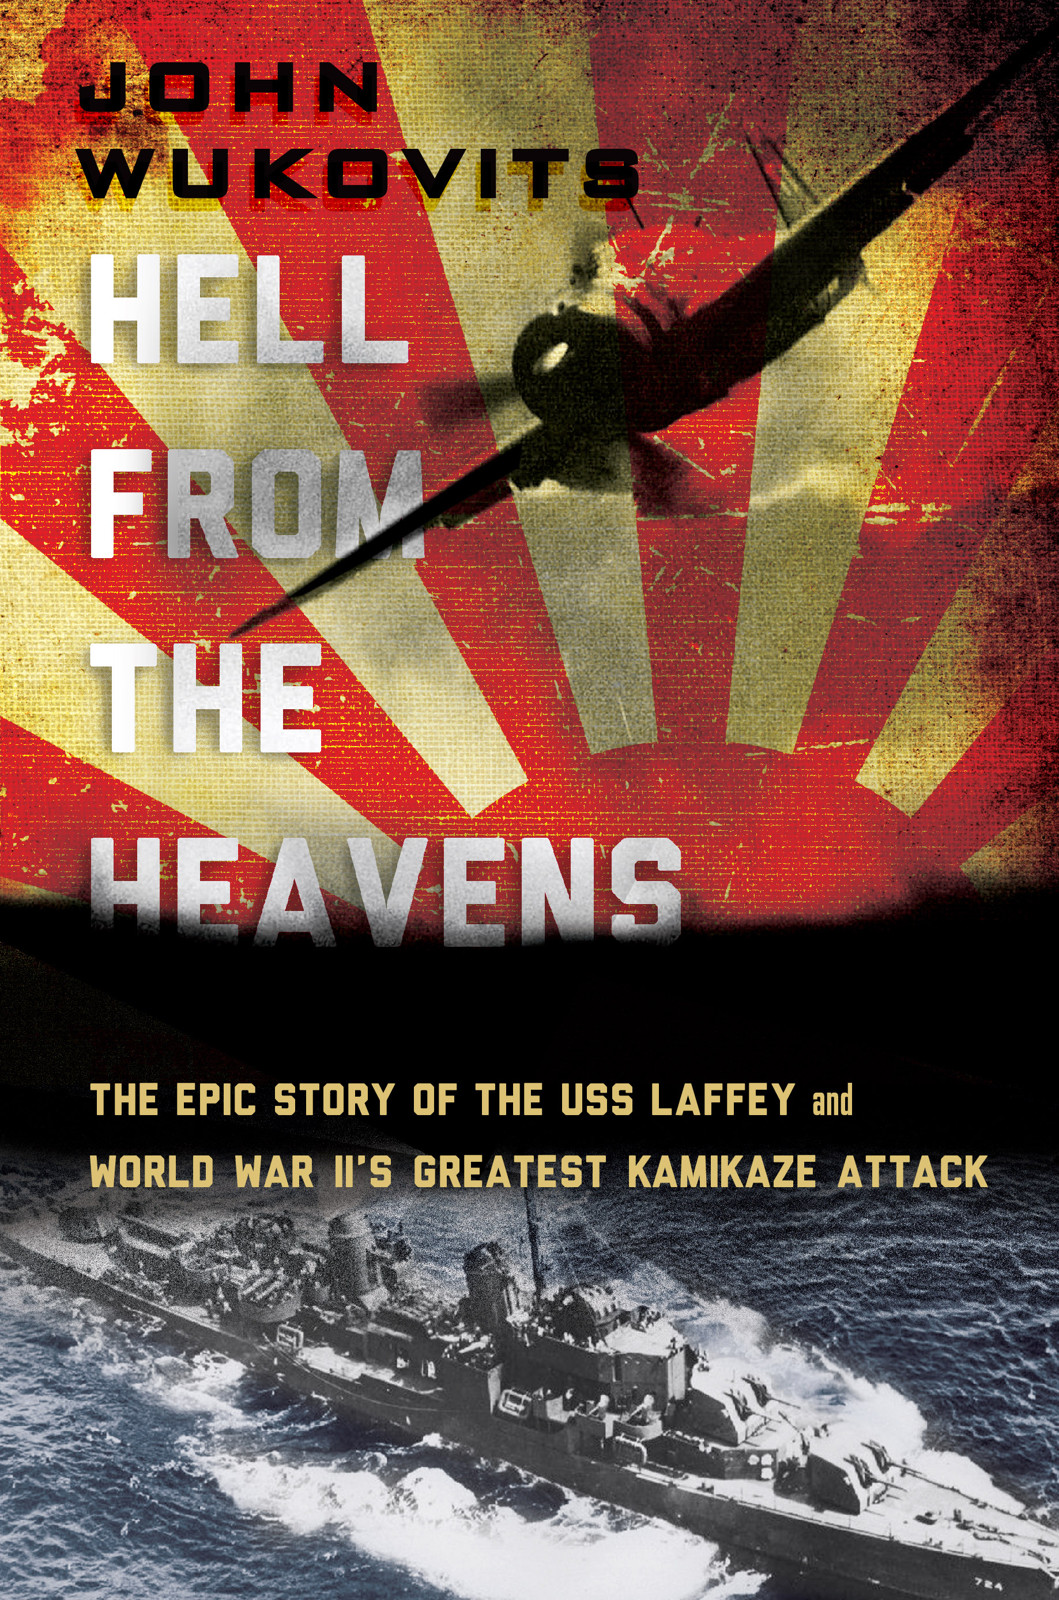 Hell from the Heavens: The Epic Story of the USS Laffey and World War II's Greatest Kamikaze Attack (repost)